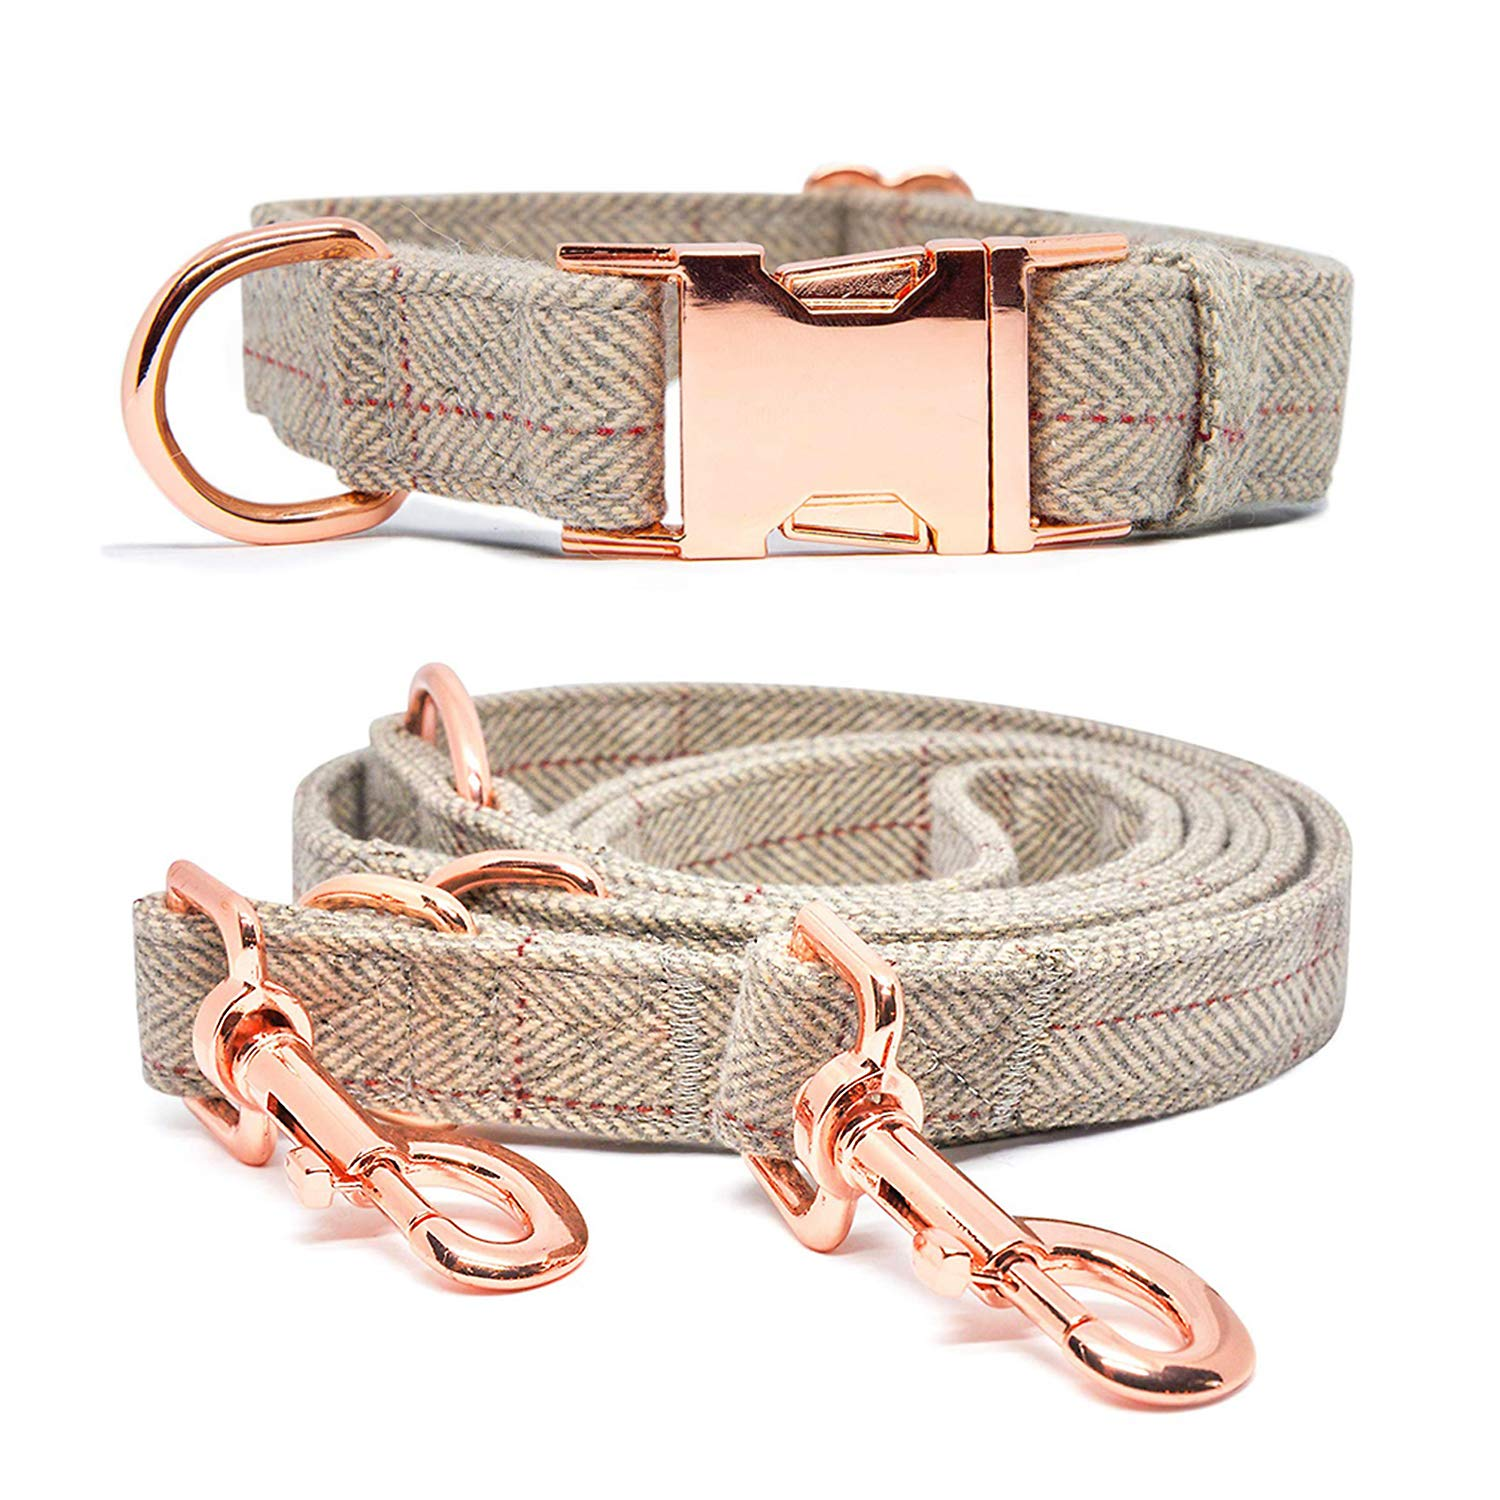 S M ( 11''15.7'' ) KUYOUGOU Dog Collar and Leash (6.6'), Stylish Design with pink gold Set, Cotton, 3 Adjustable Lengths, for Medium to Large Dogs